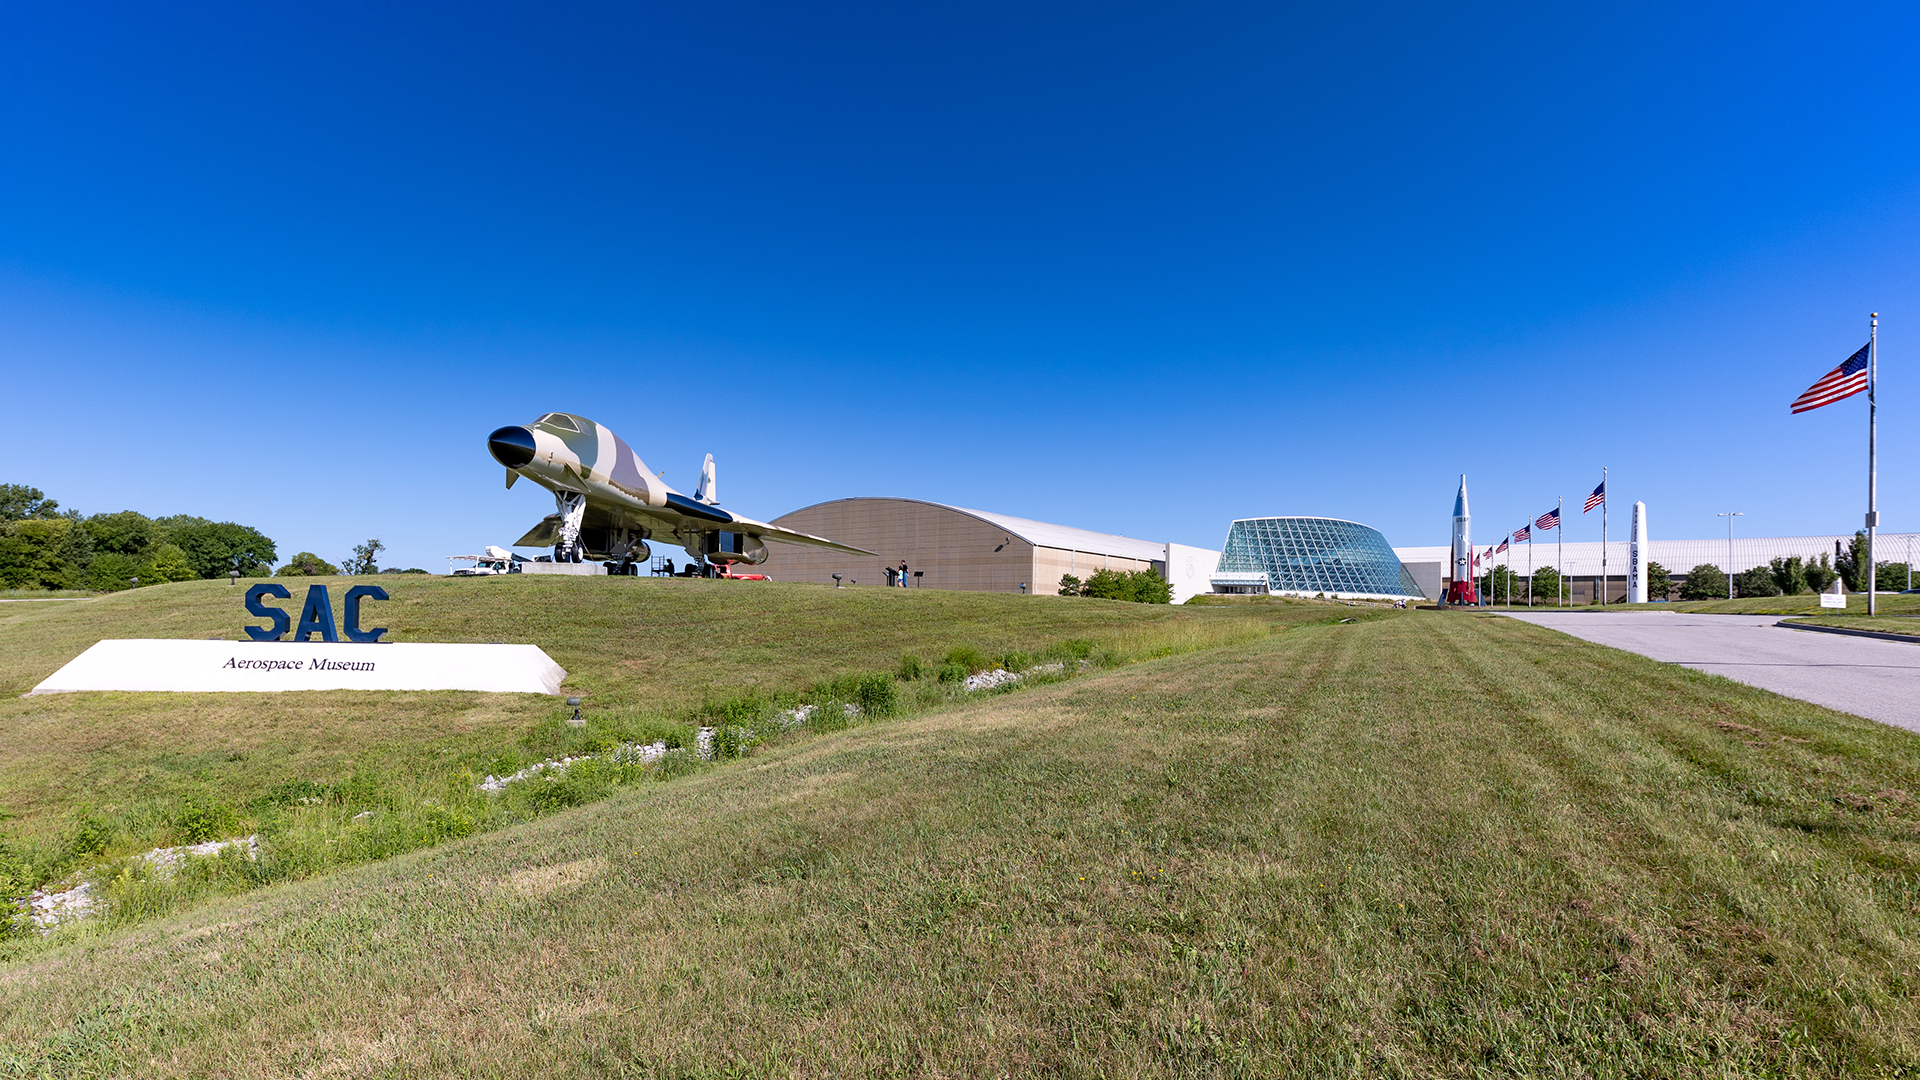 sac-air-and-space-museum-3-of-52